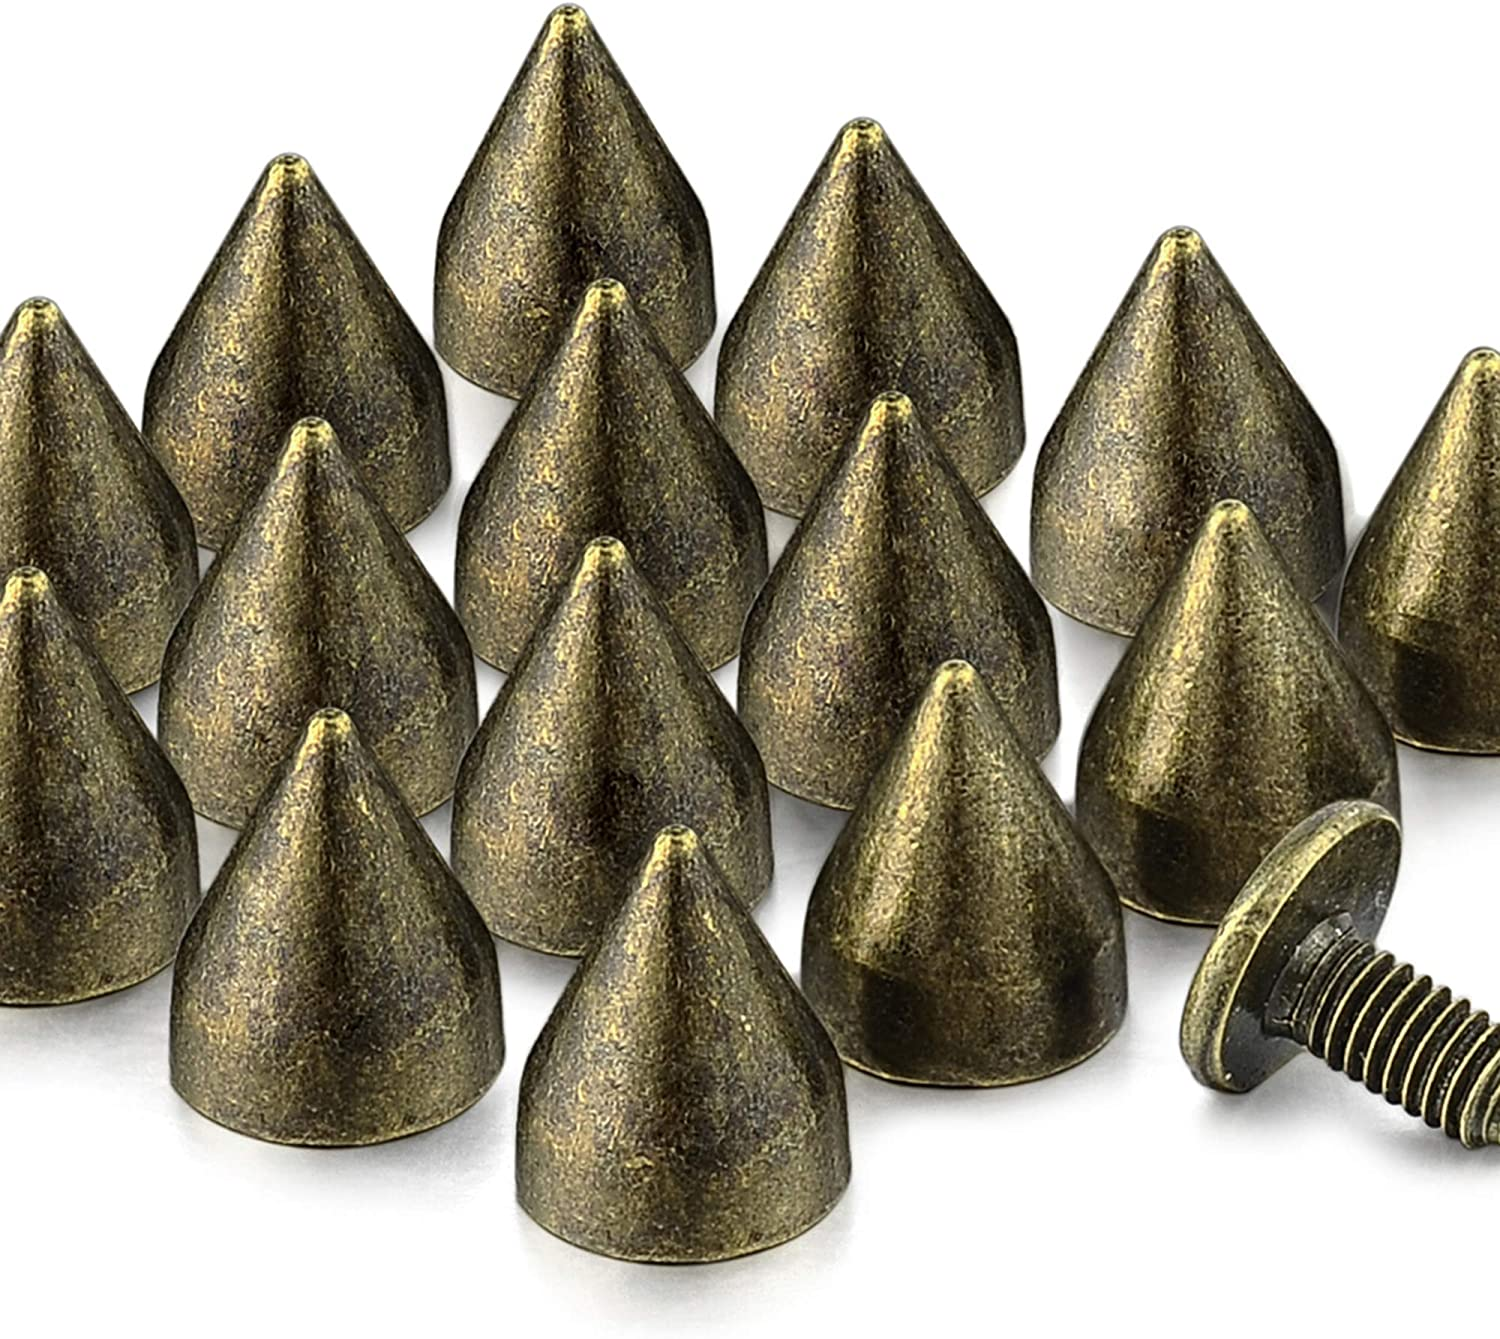 100 Sets 9MM Bronze Spikes and Studs Metal Bullet Cone Spikes Screw Back Leather Craft Rapid Rivet Screws Punk Studs and Spikes for Clothing Shoes Leather Belts Bag Accessories 11//32 Inch